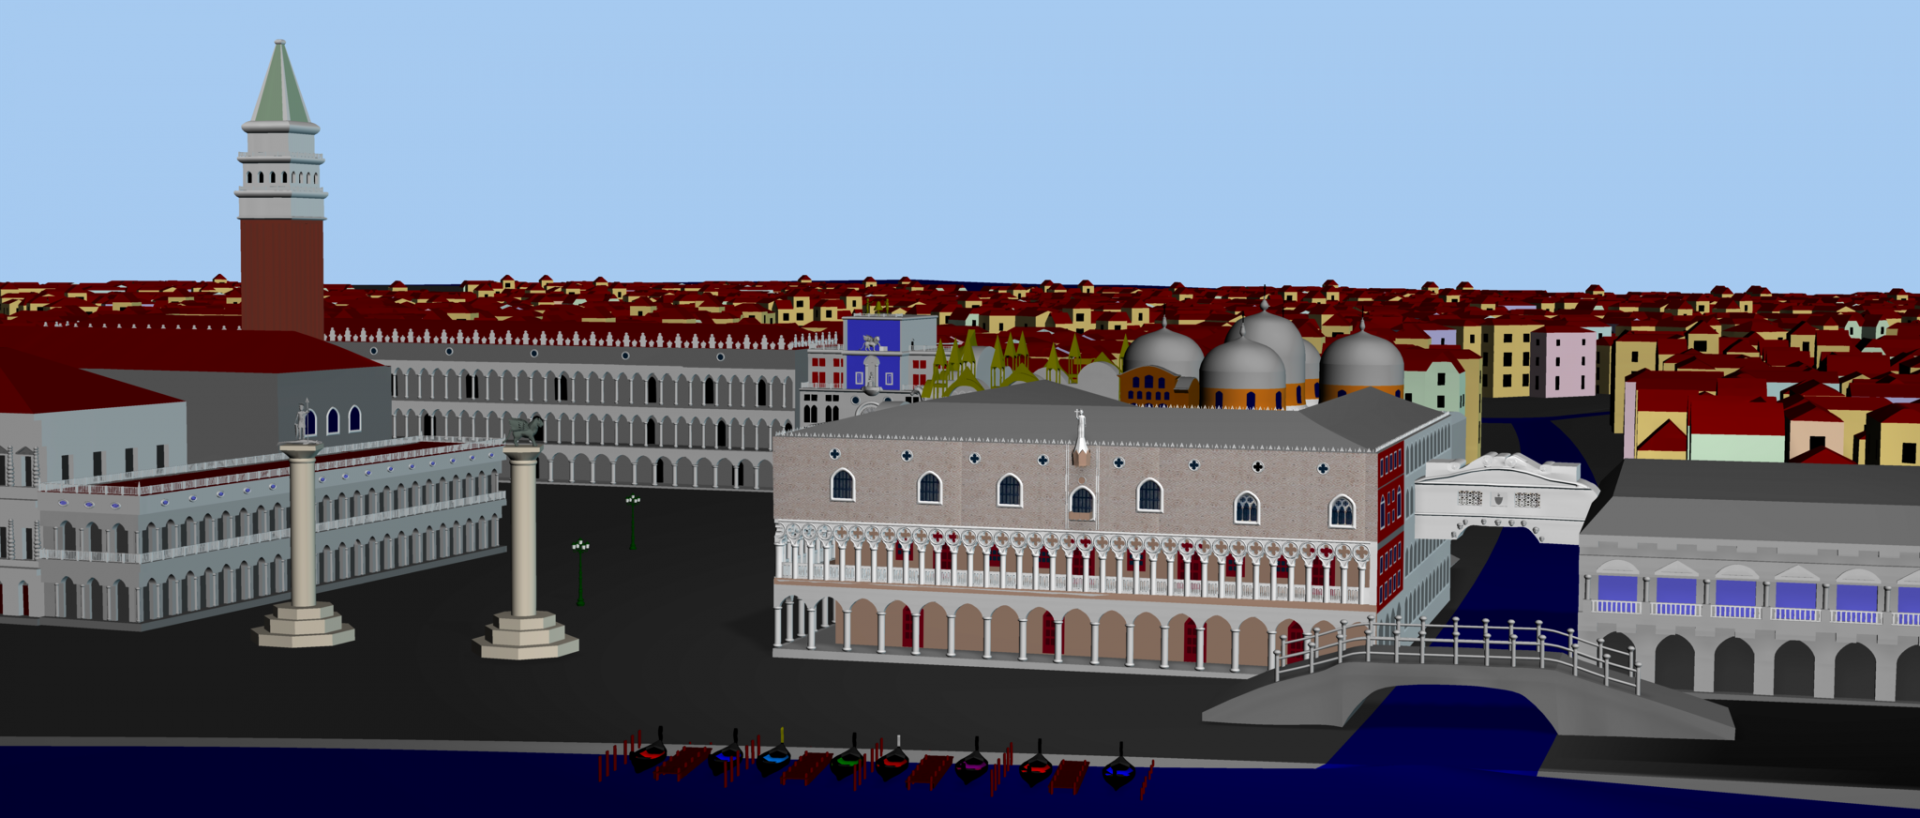 Venice in progress0.png